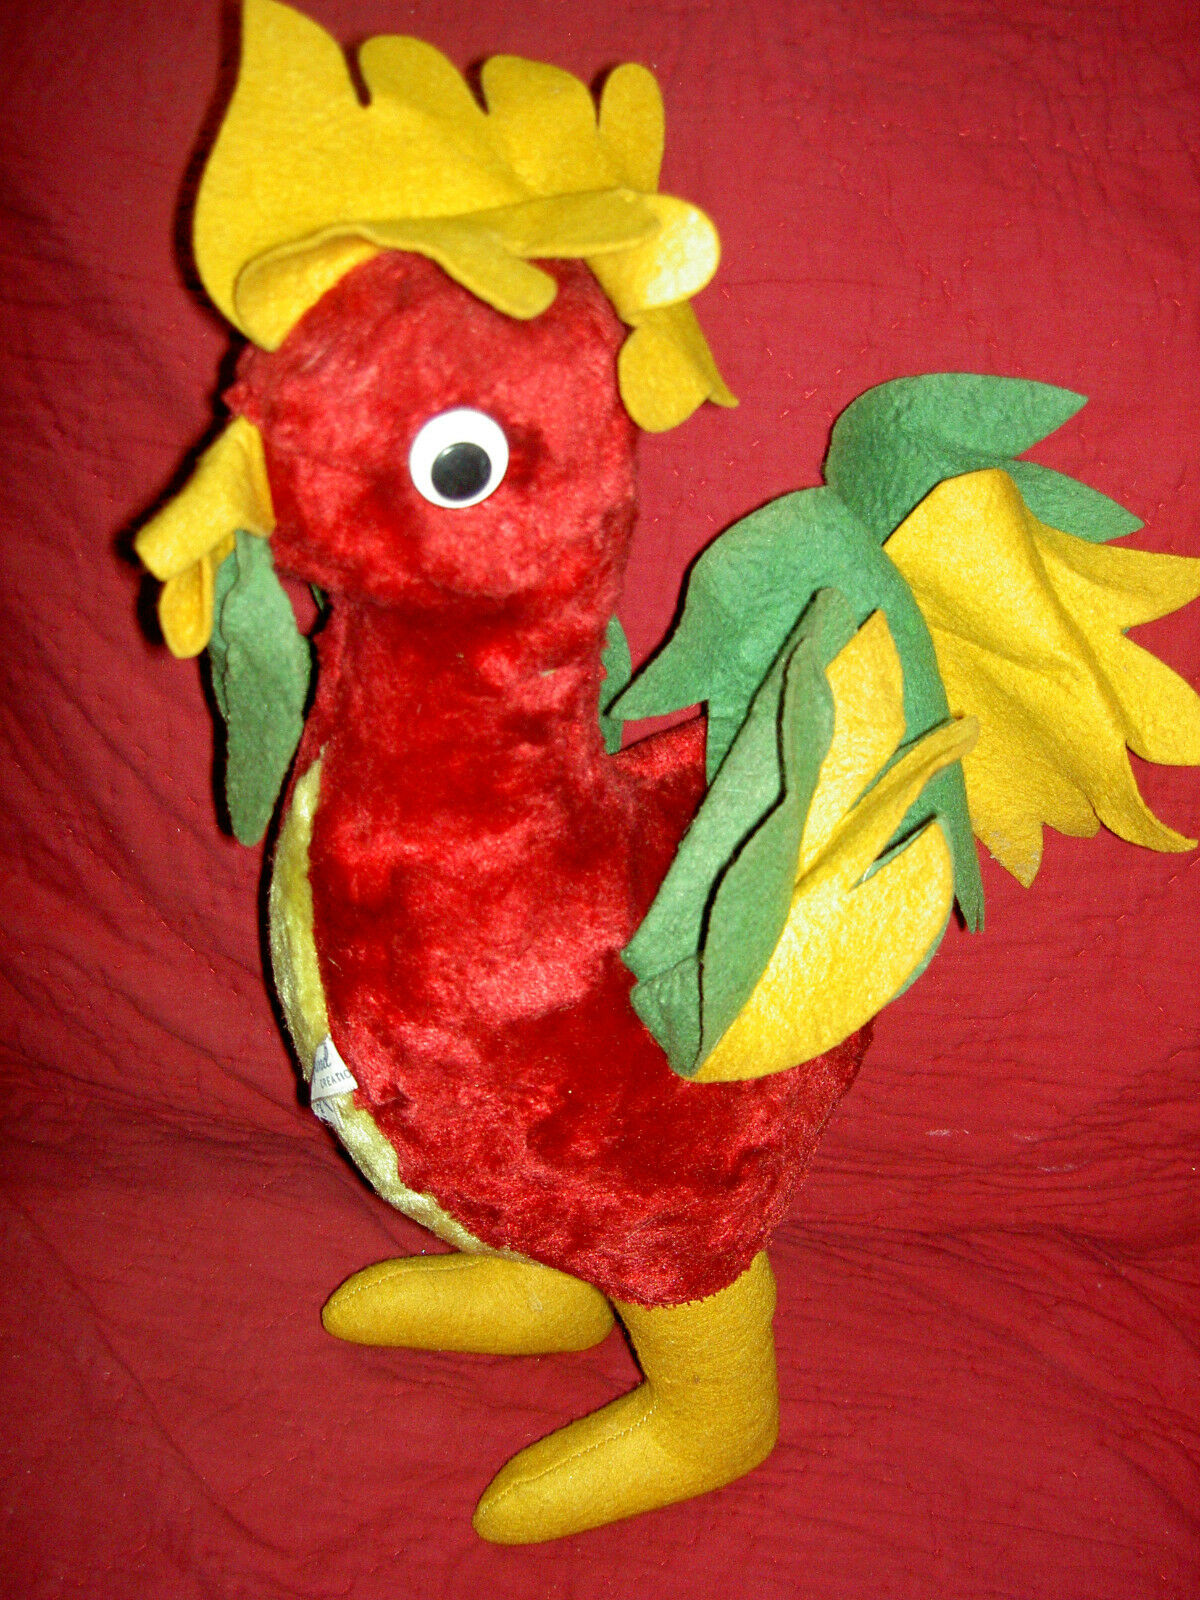 1940s 1940s vintage, GUND Mfg. (Swedlin) lbd Large yellow plush ROOSTER toy, excellent